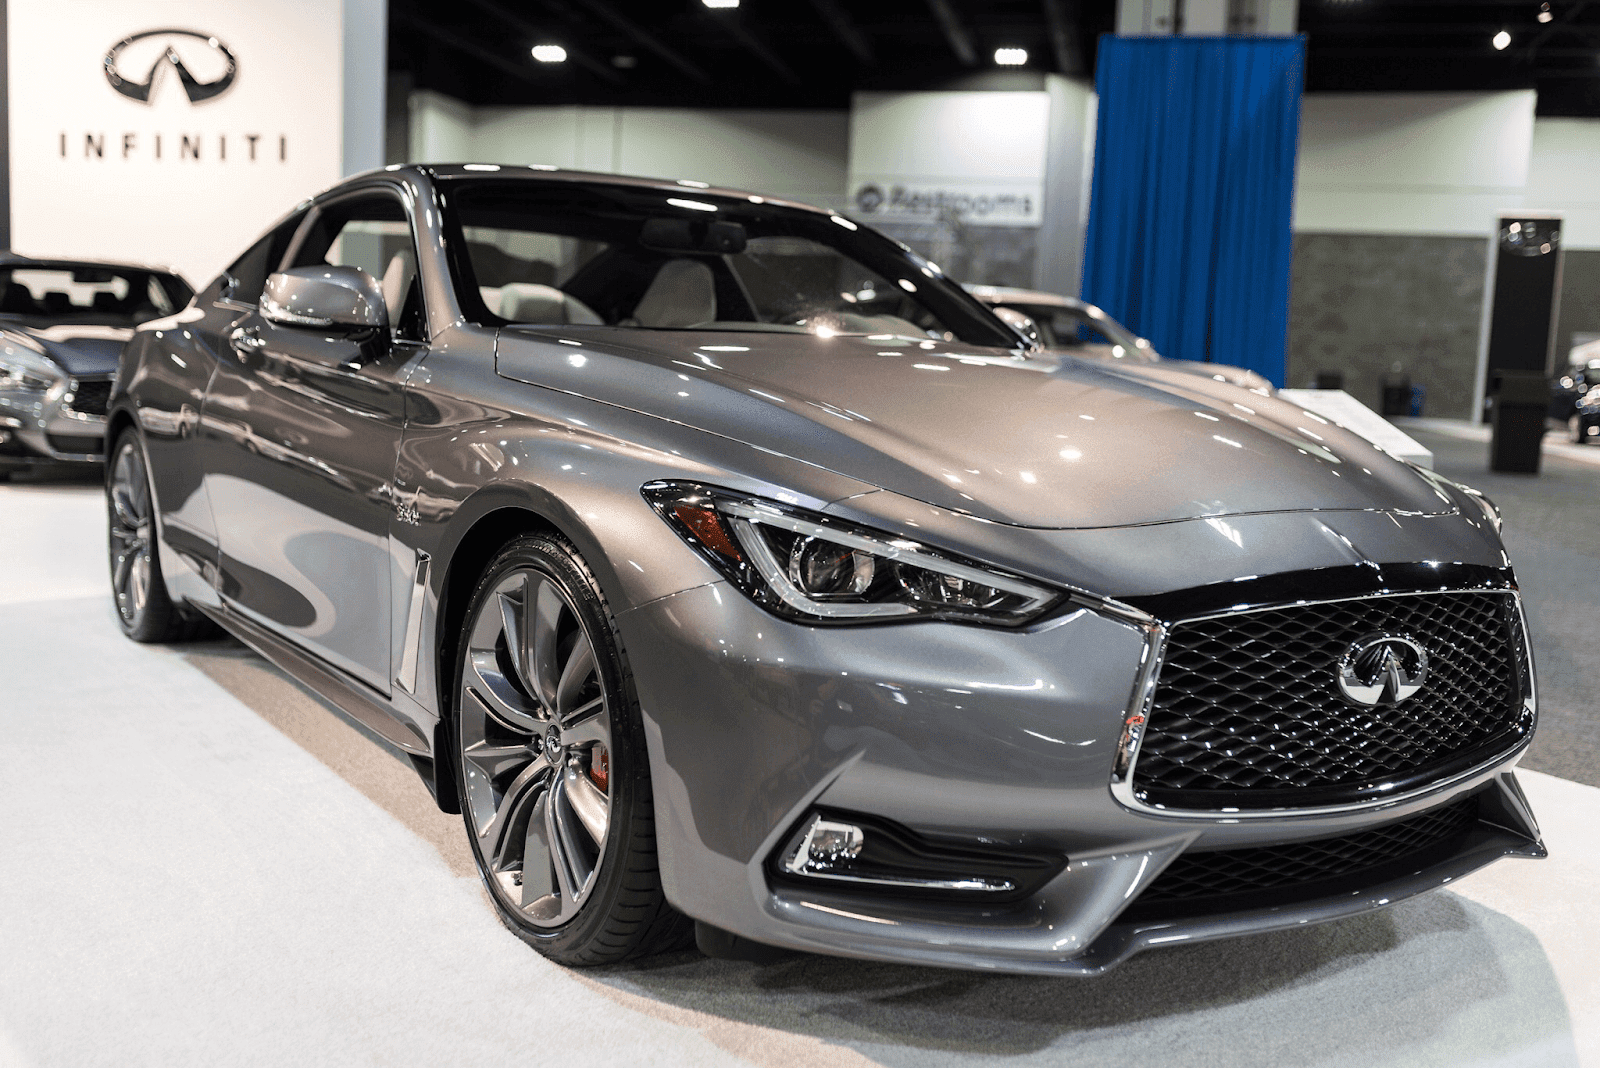 The Atlanta International Auto Show 2019